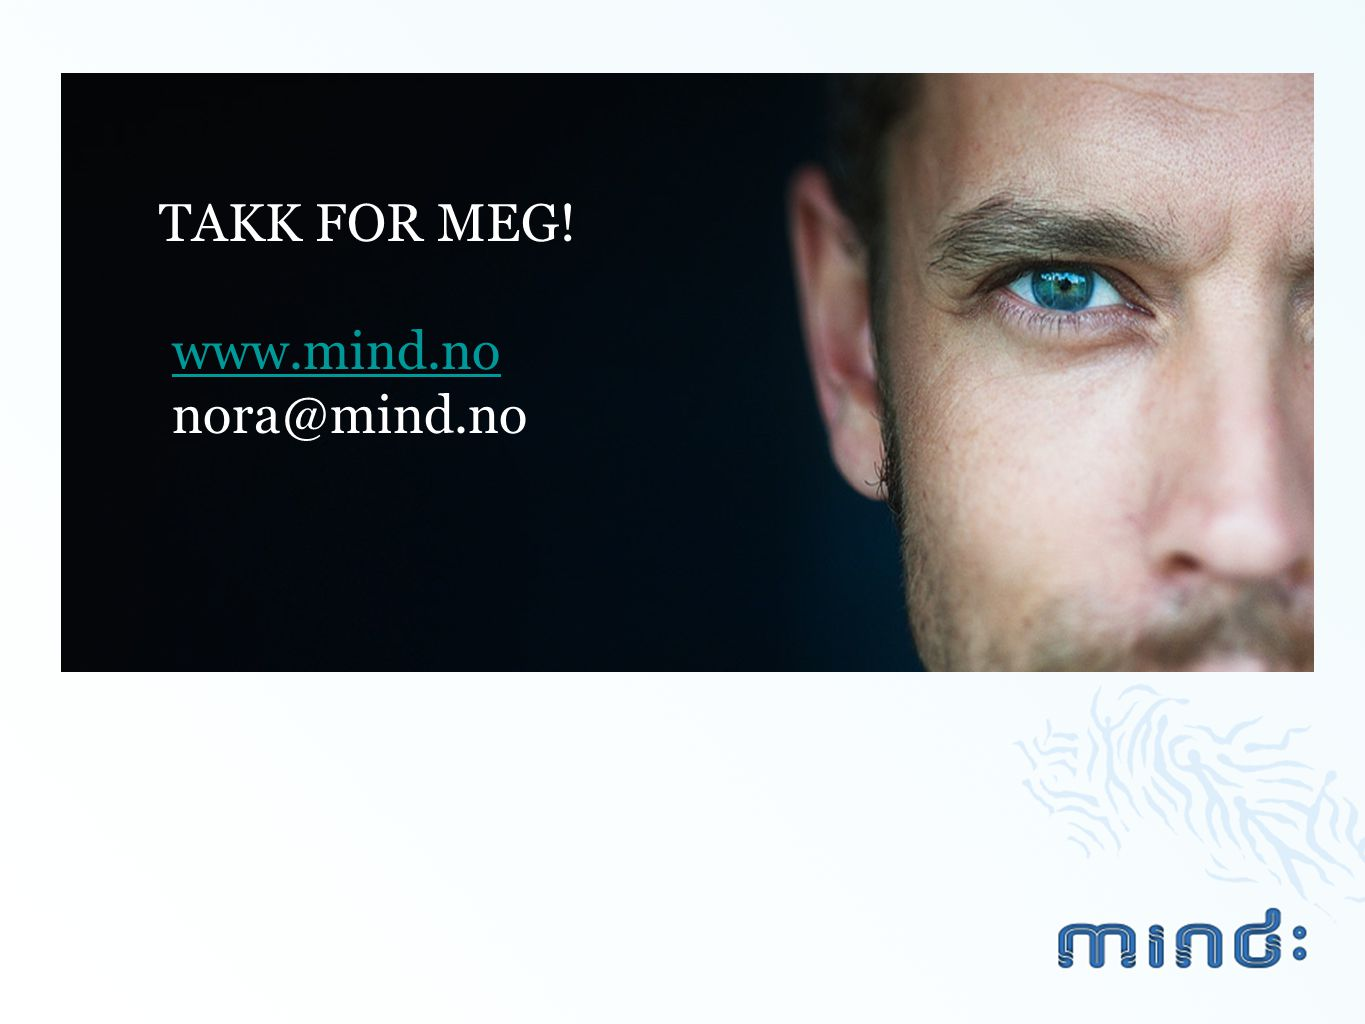 TAKK FOR MEG! www.mind.no nora@mind.no